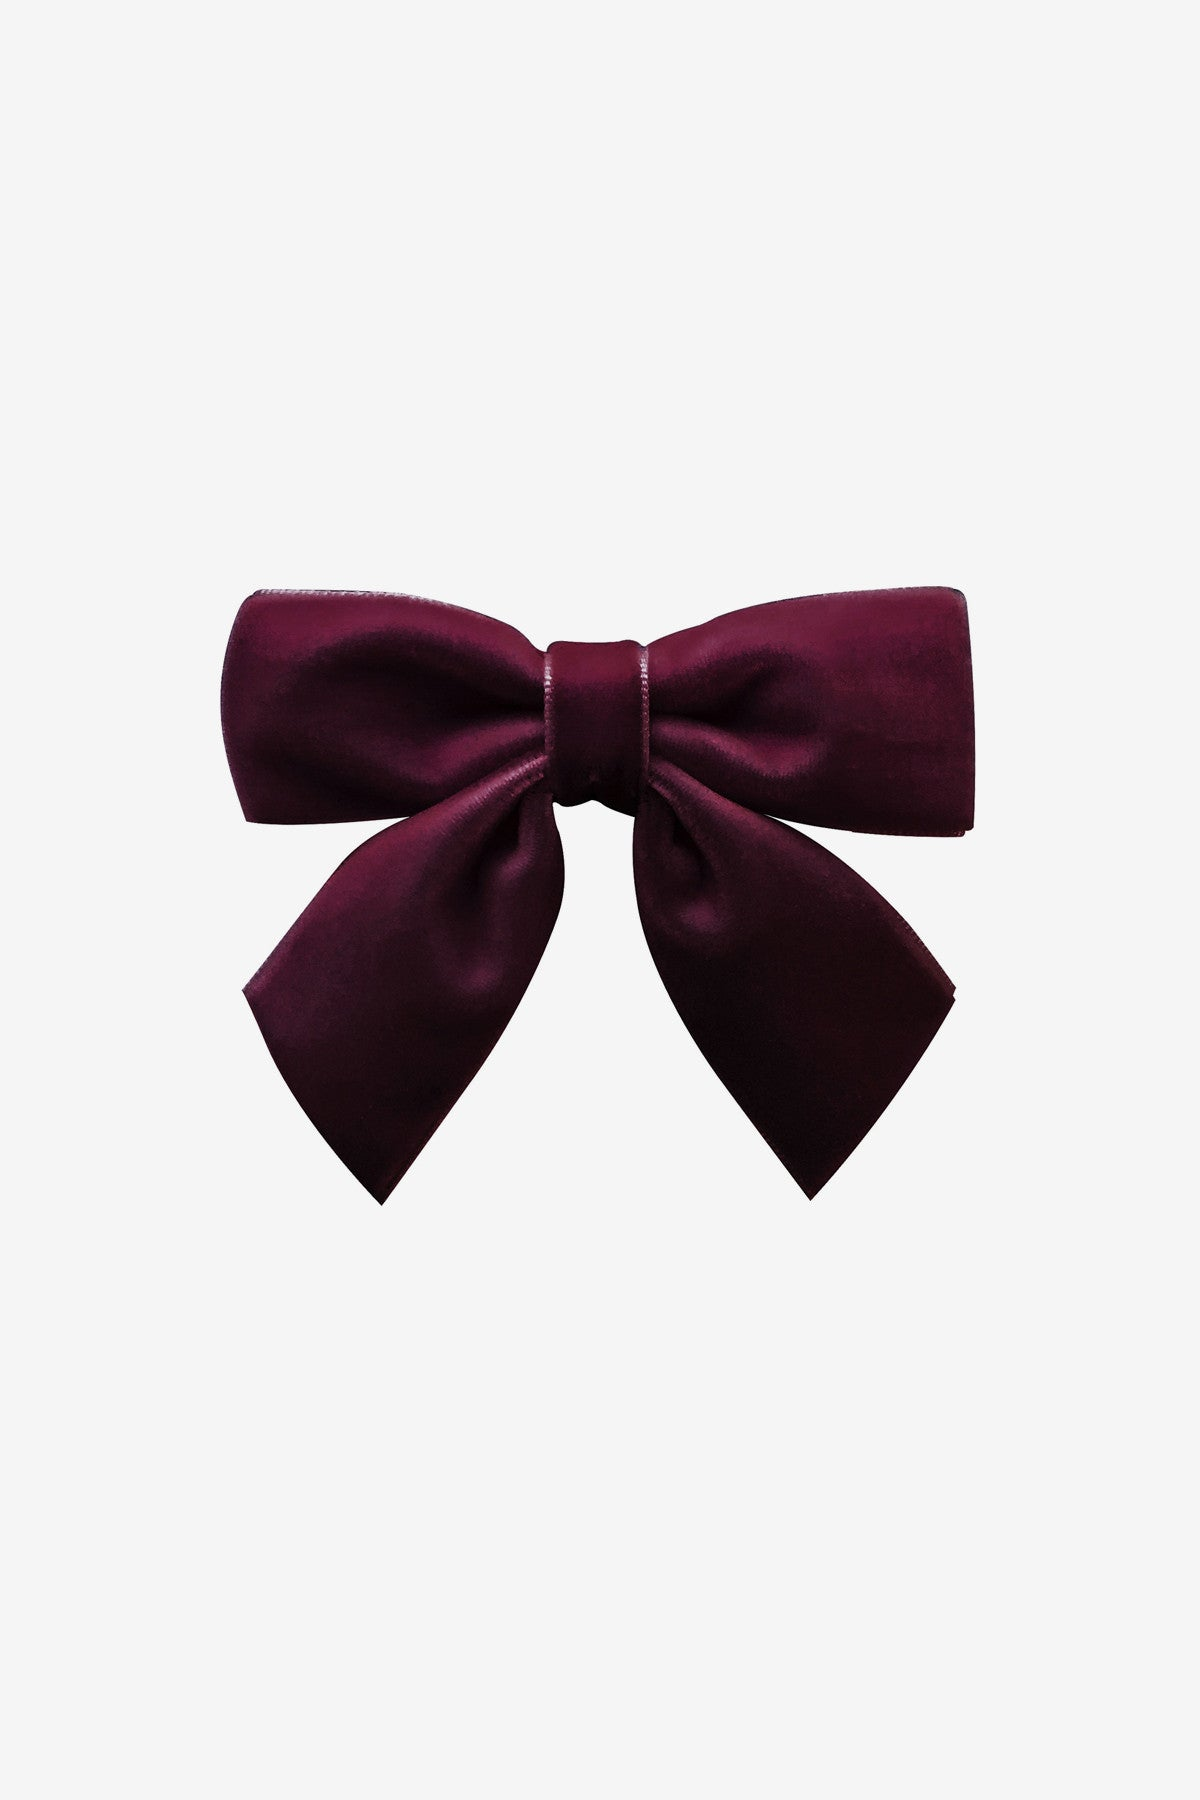 a6ce9bbe3782 Burgundy Velvet Bow Hair Clip - Mini Ruby